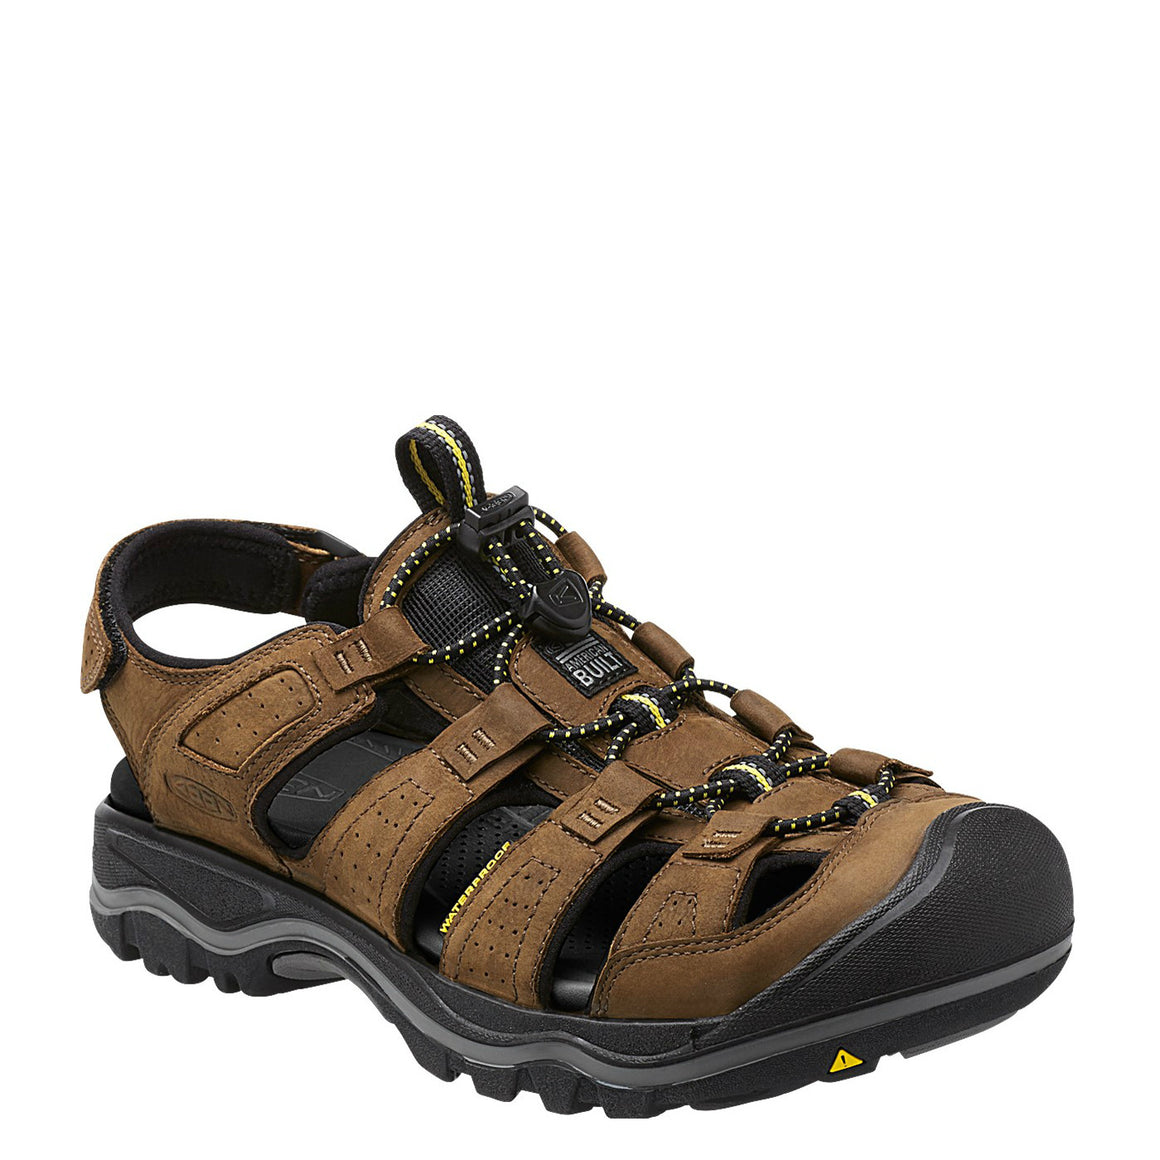 Keen Men's Rialto - Bison/Black 1014675